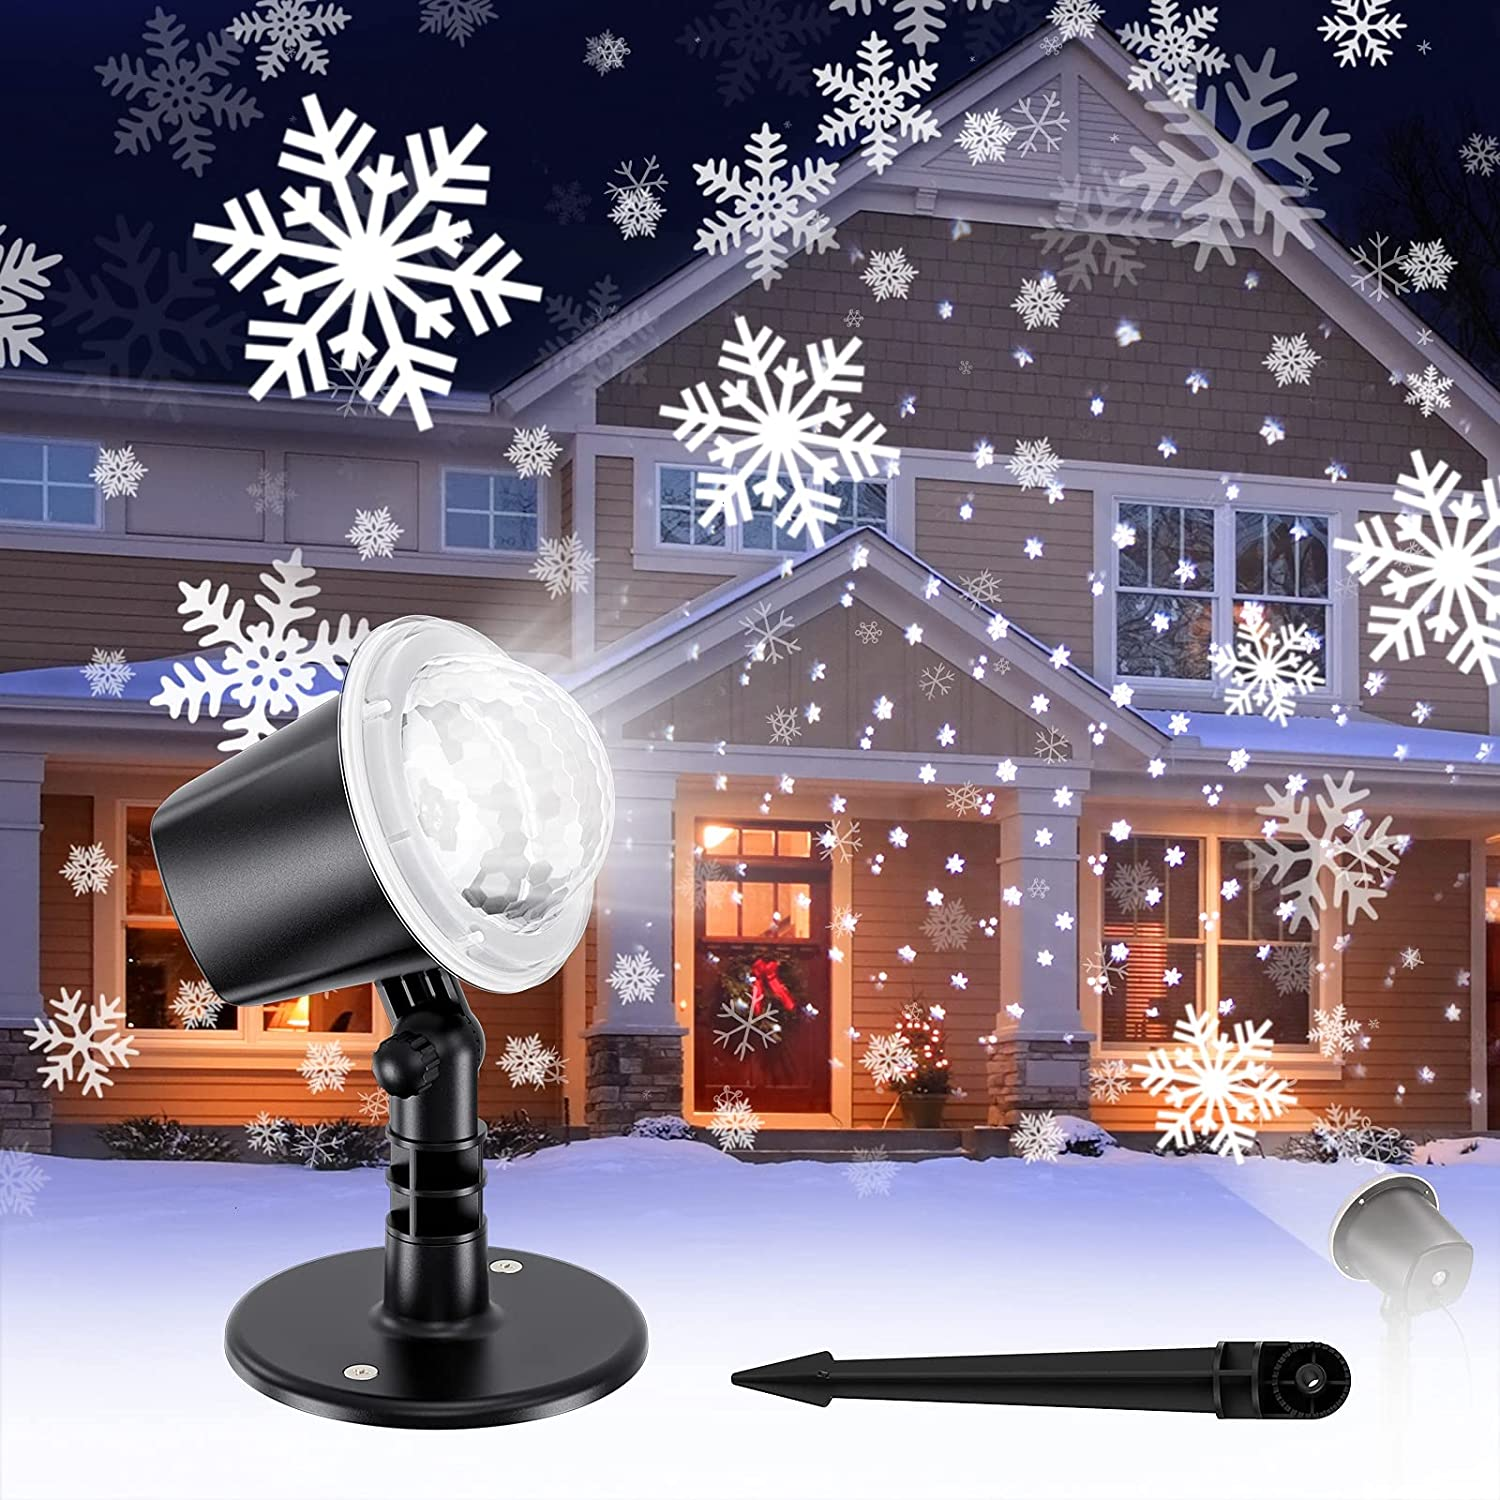 Koicaxy Christmas Snowflake Projector Light, Led Snowfall Show Outdoor Weatherproof Landscape Decorative Lighting for Xmas Holiday Party Wedding Garden Patio